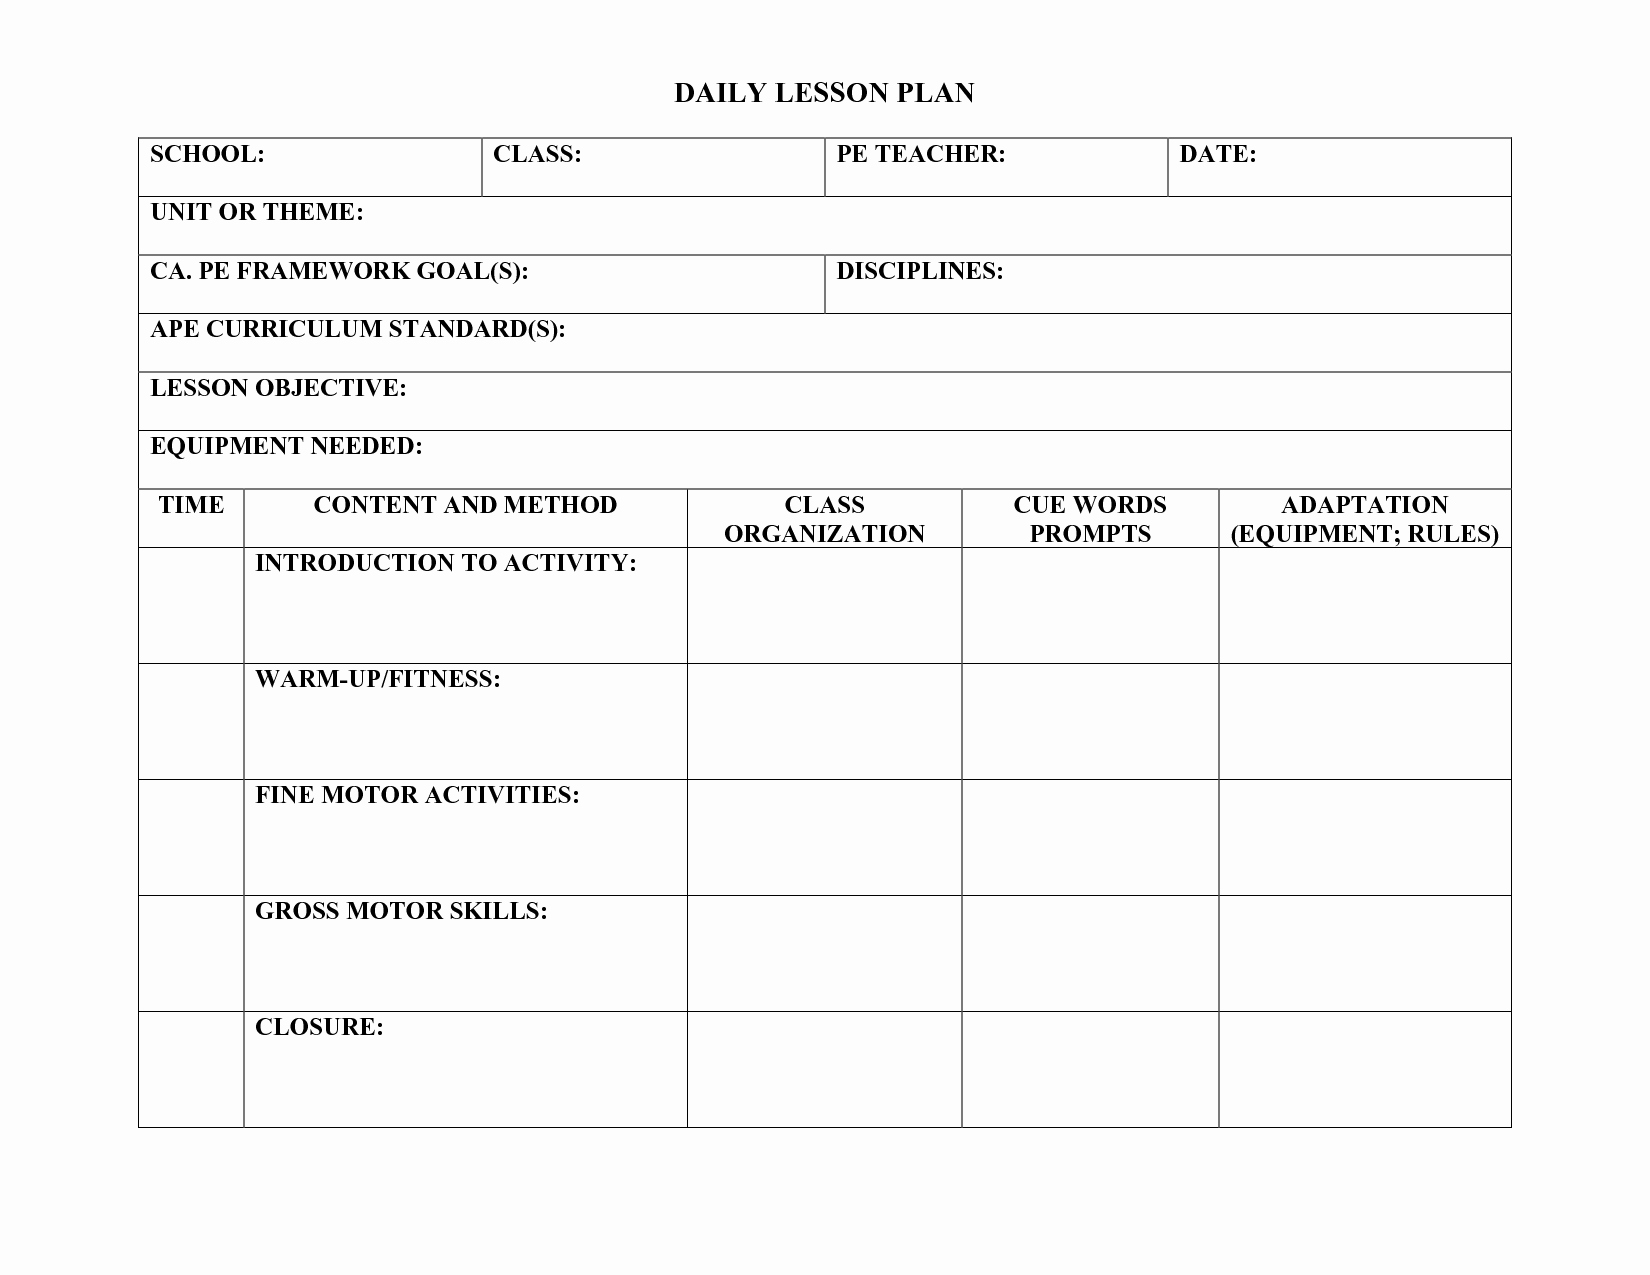 Week Lesson Plan Template Luxury Pe Lesson Plan Template Education